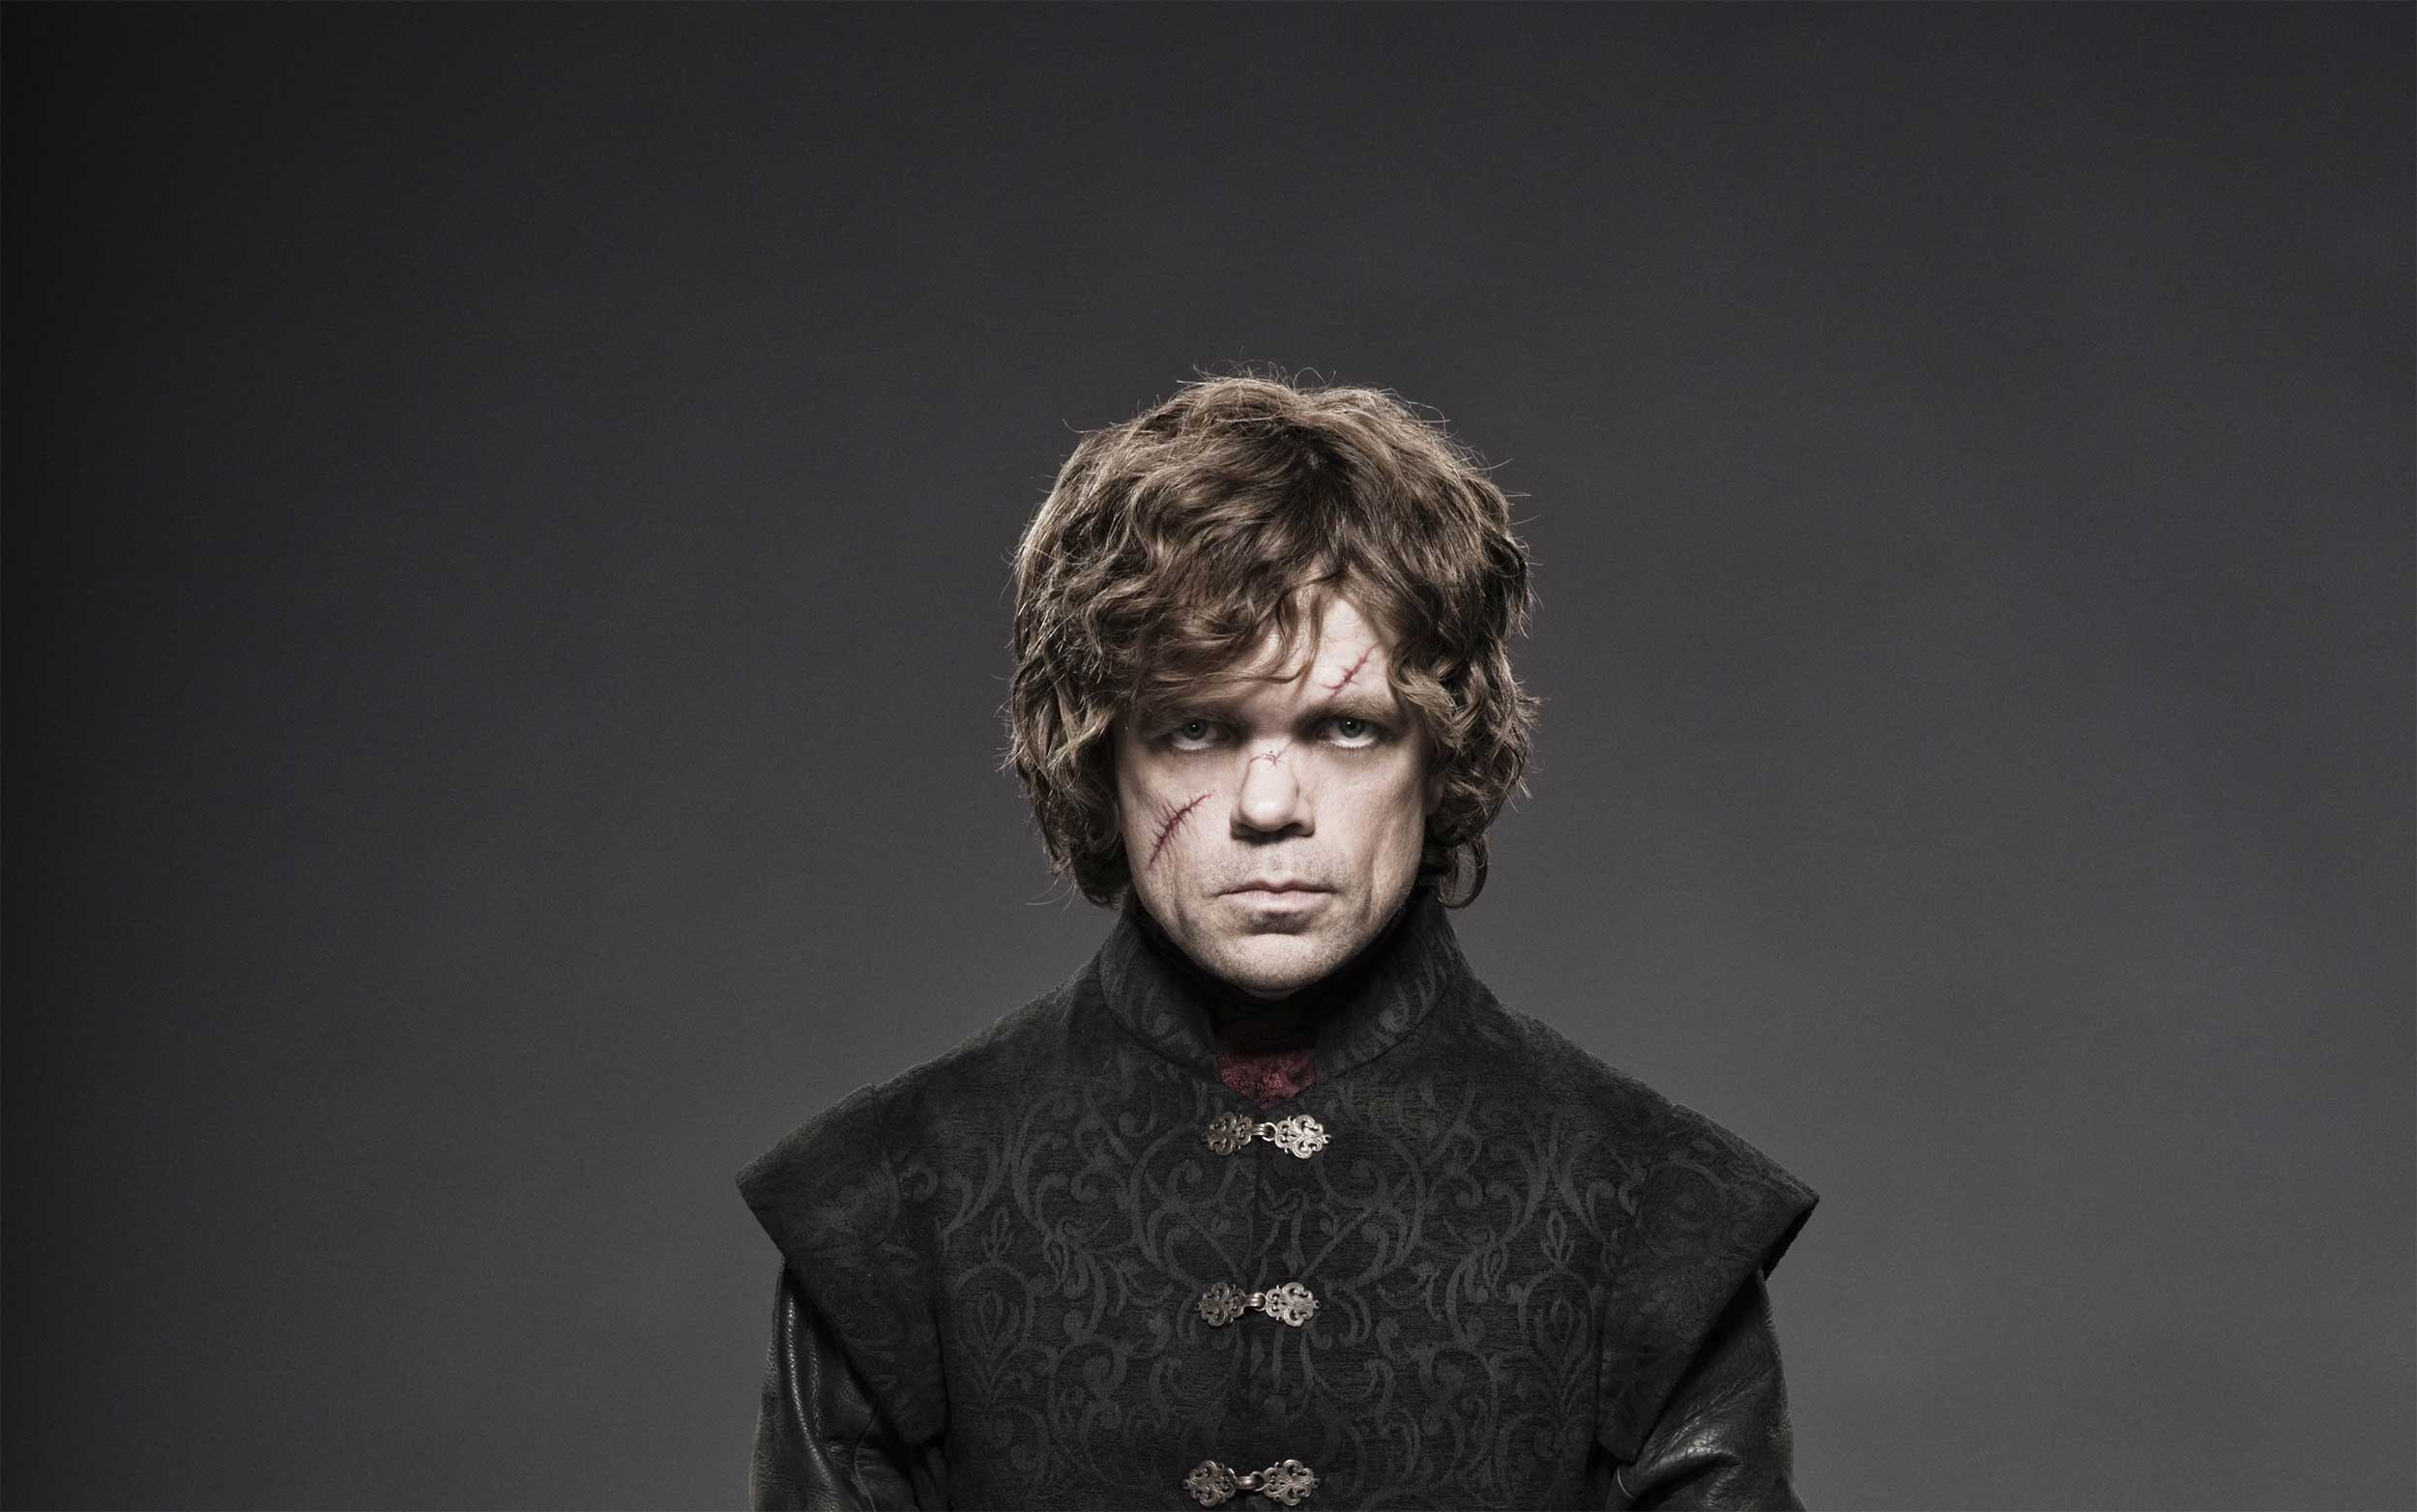 tyrion-lannister-game-of-thrones-new.jpg